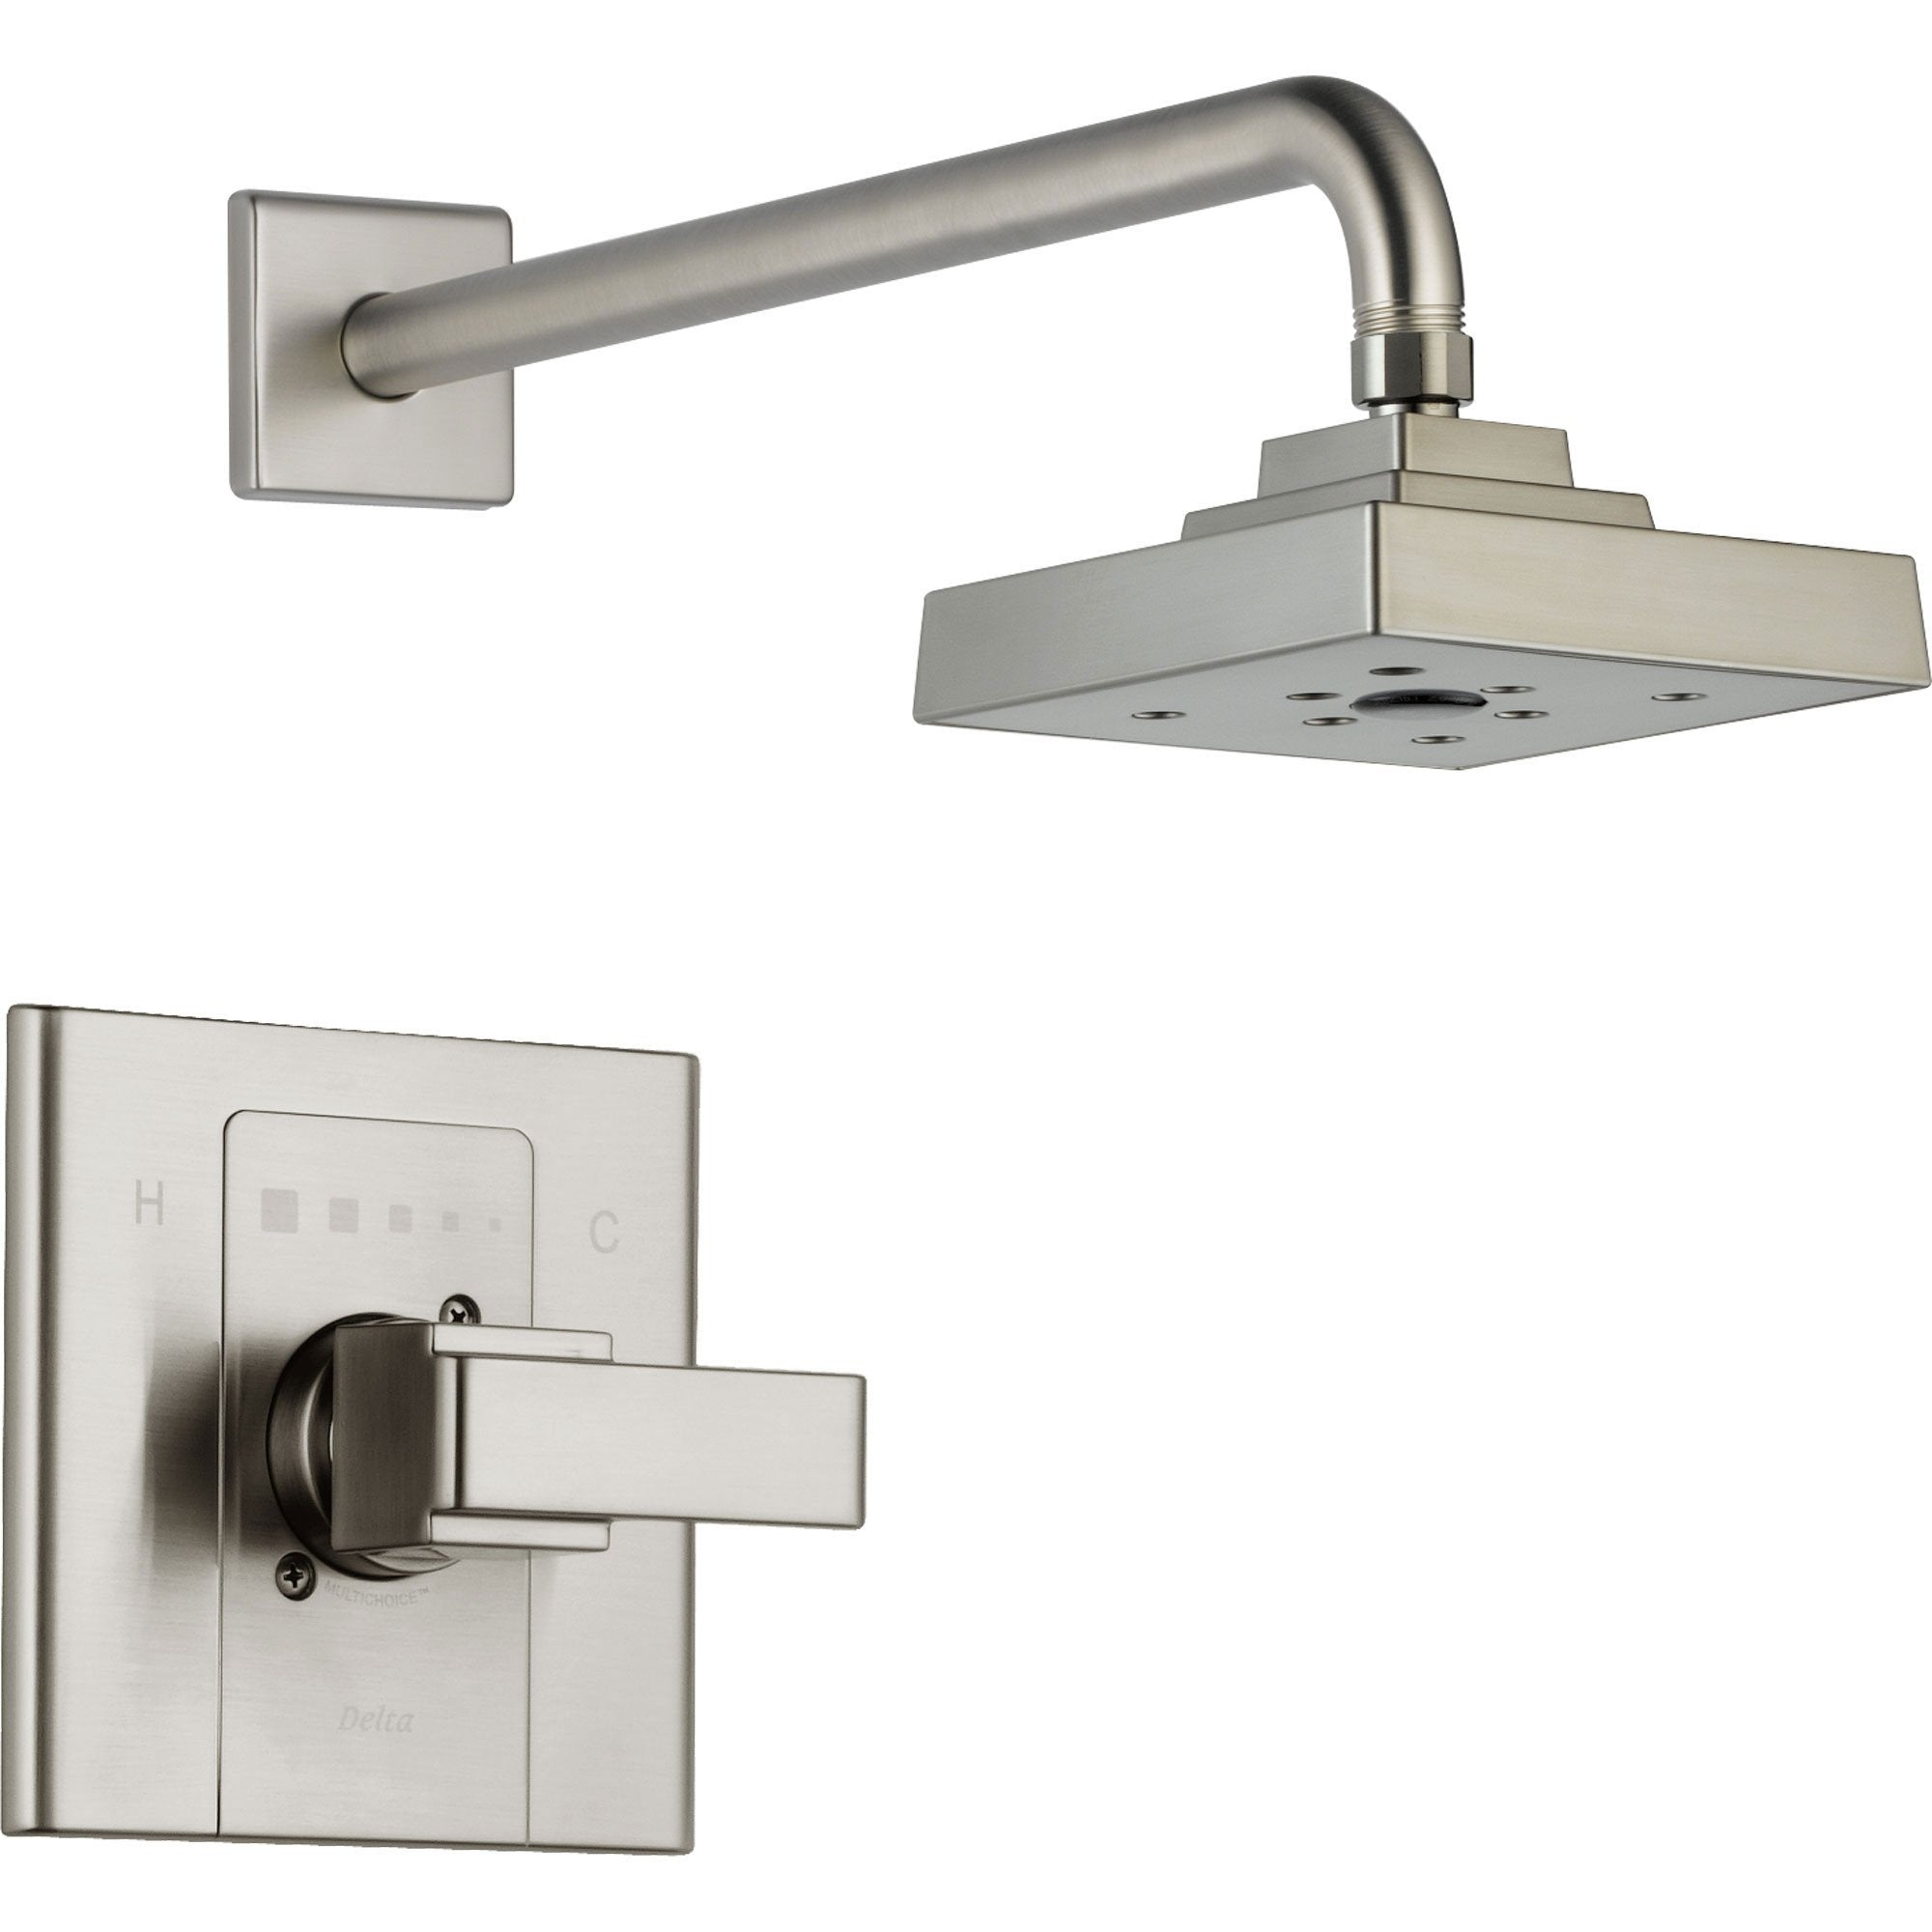 Delta Arzo Stainless Steel Finish Modern Square Shower Faucet with Valve D594V